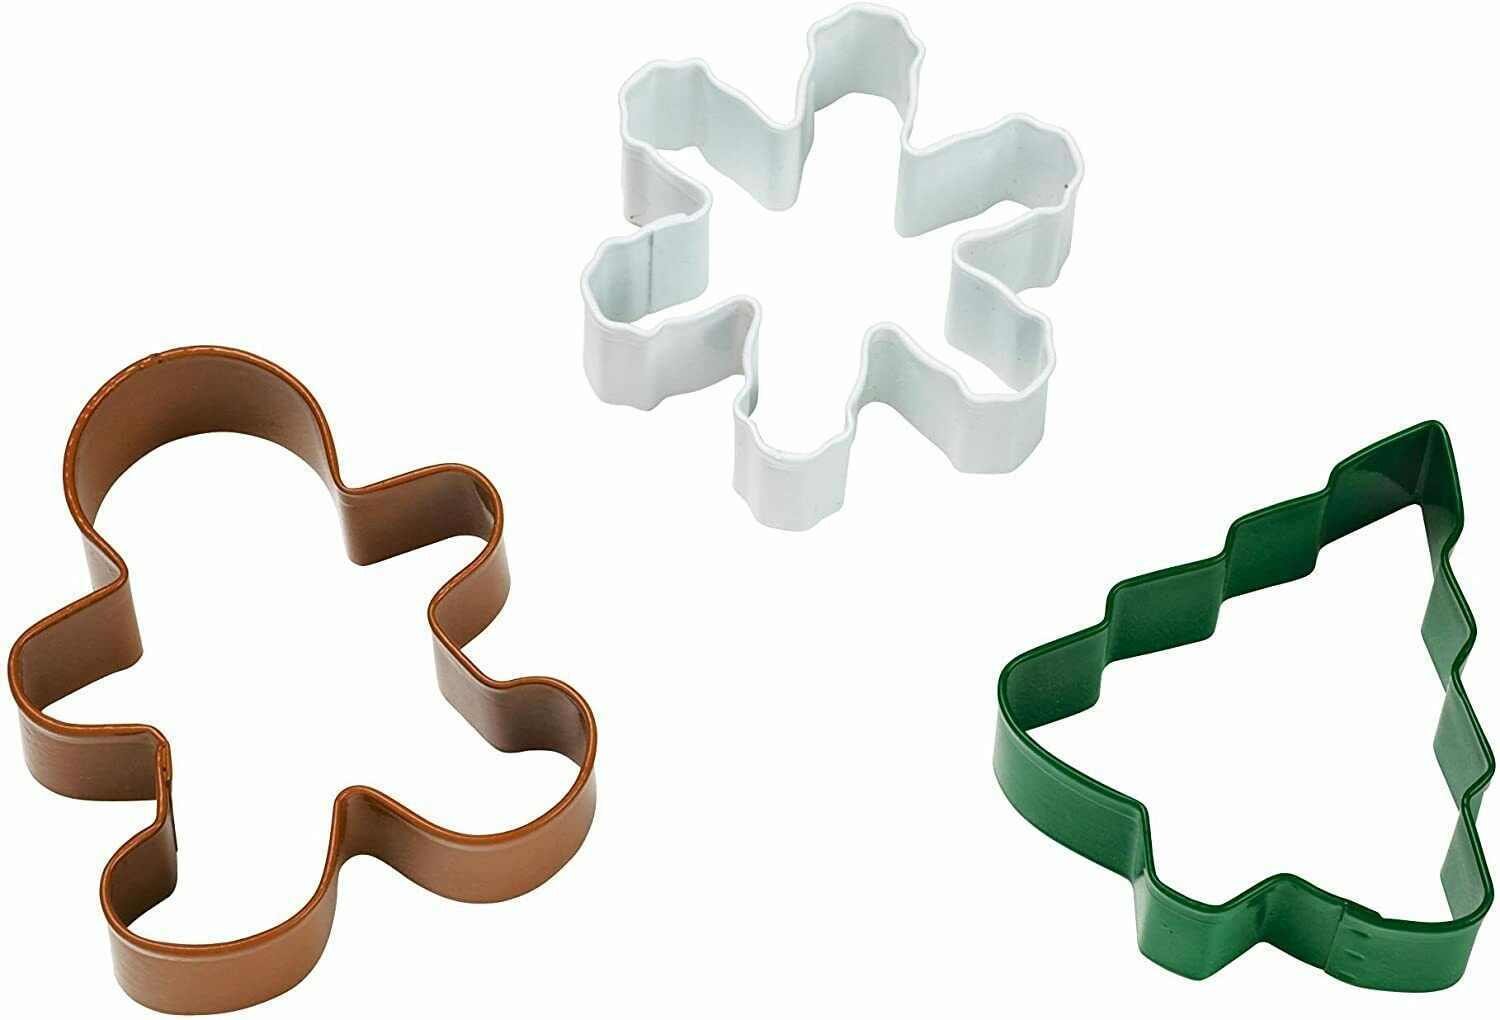 Wilton Cookie Cutter Set 2308-1266 Christmas Shapes Tree Snowflake Gingerbread - $8.60